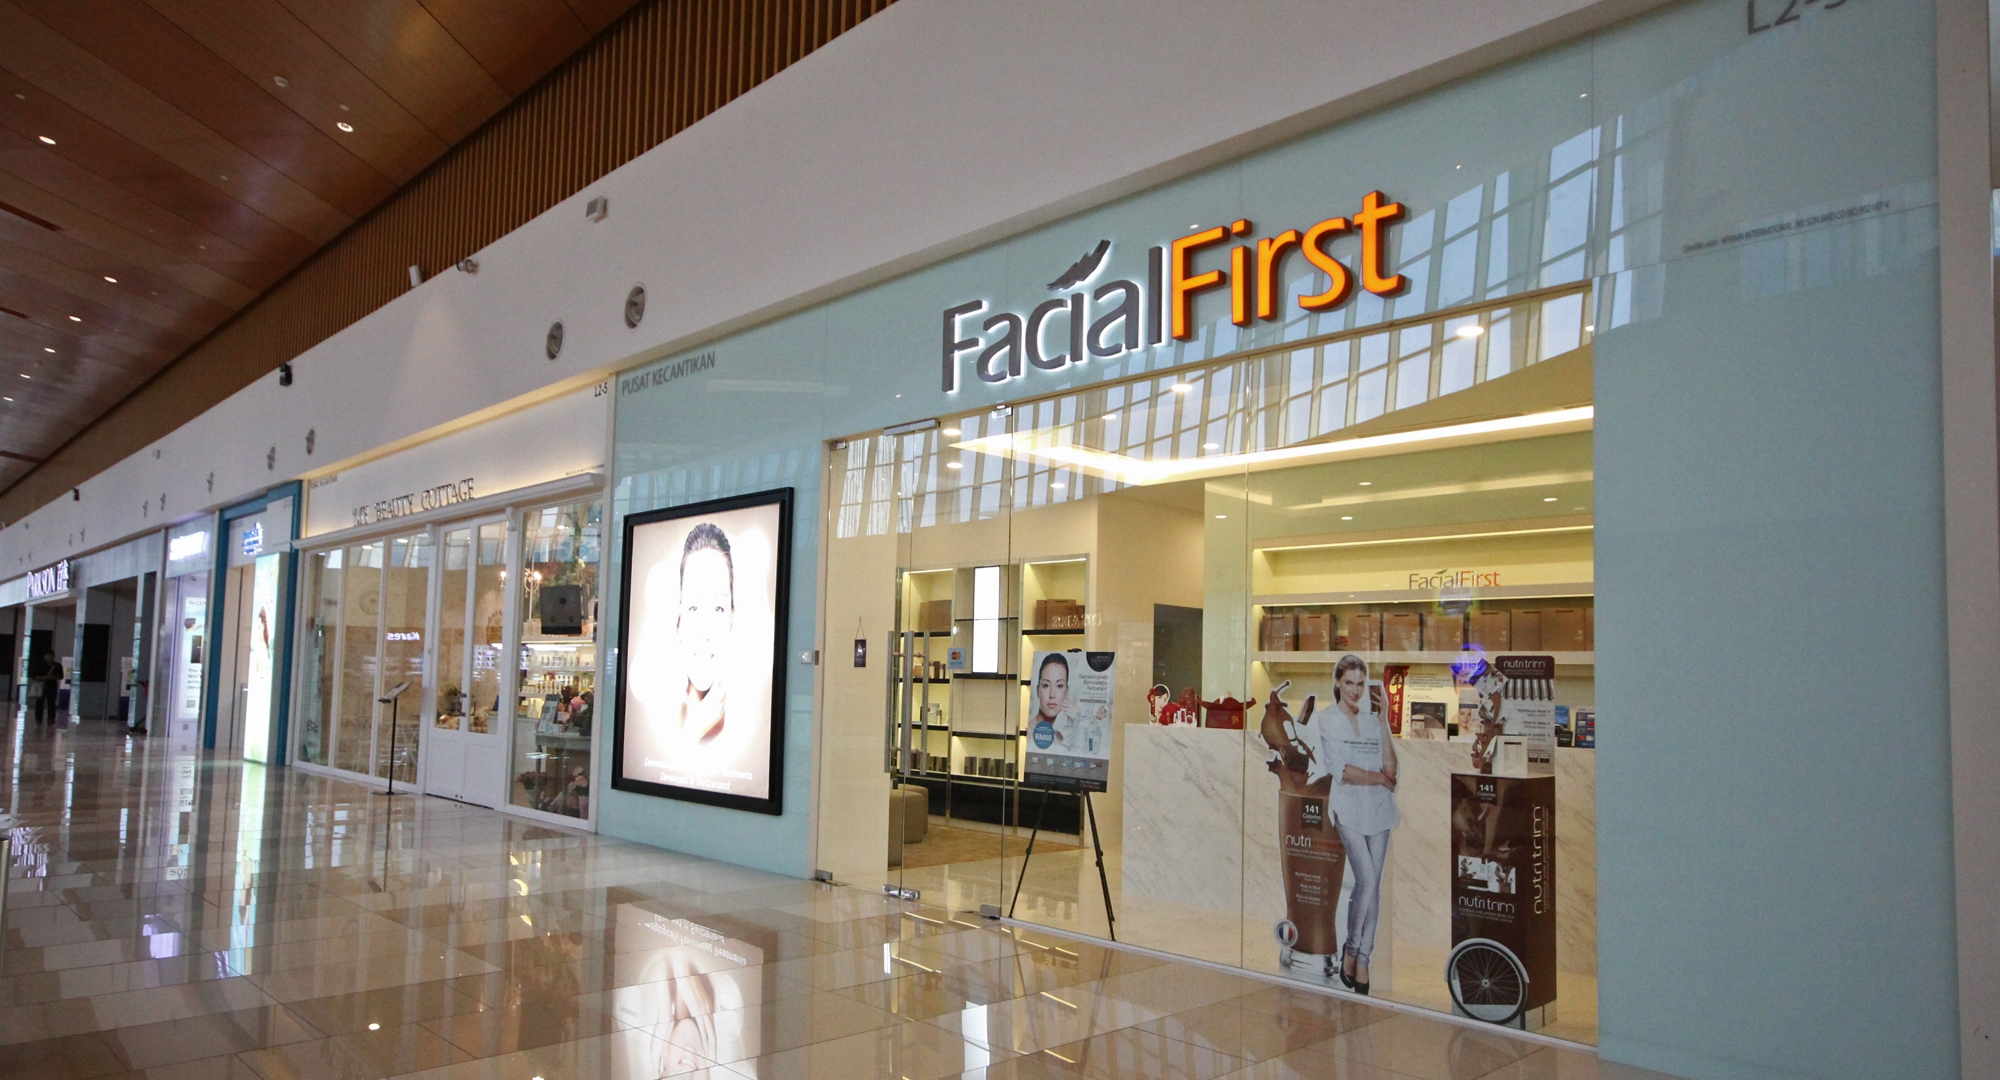 Facial First At Ioi City Mall Putrajaya Kingsmen Malaysia